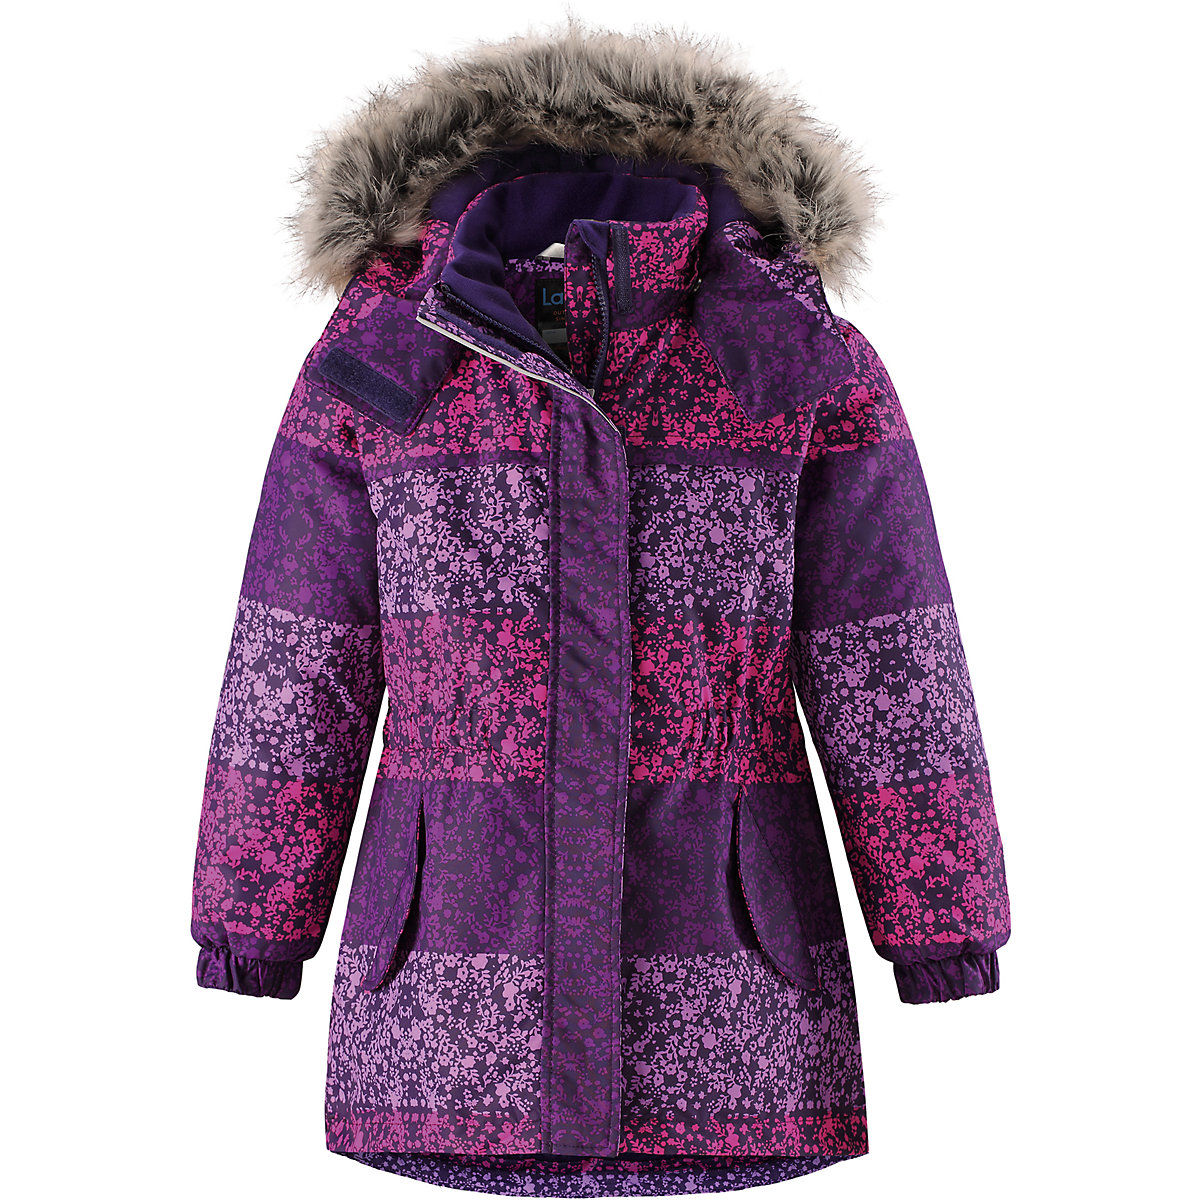 Jackets & Coats LASSIE for girls 8627038 Jacket Coat Denim Cardigan Warm Children clothes Kids hirsionsan large raccoon fur collar parka winter jacket women 2017 new korean fashion corduroy outwear thick warm hooded coat